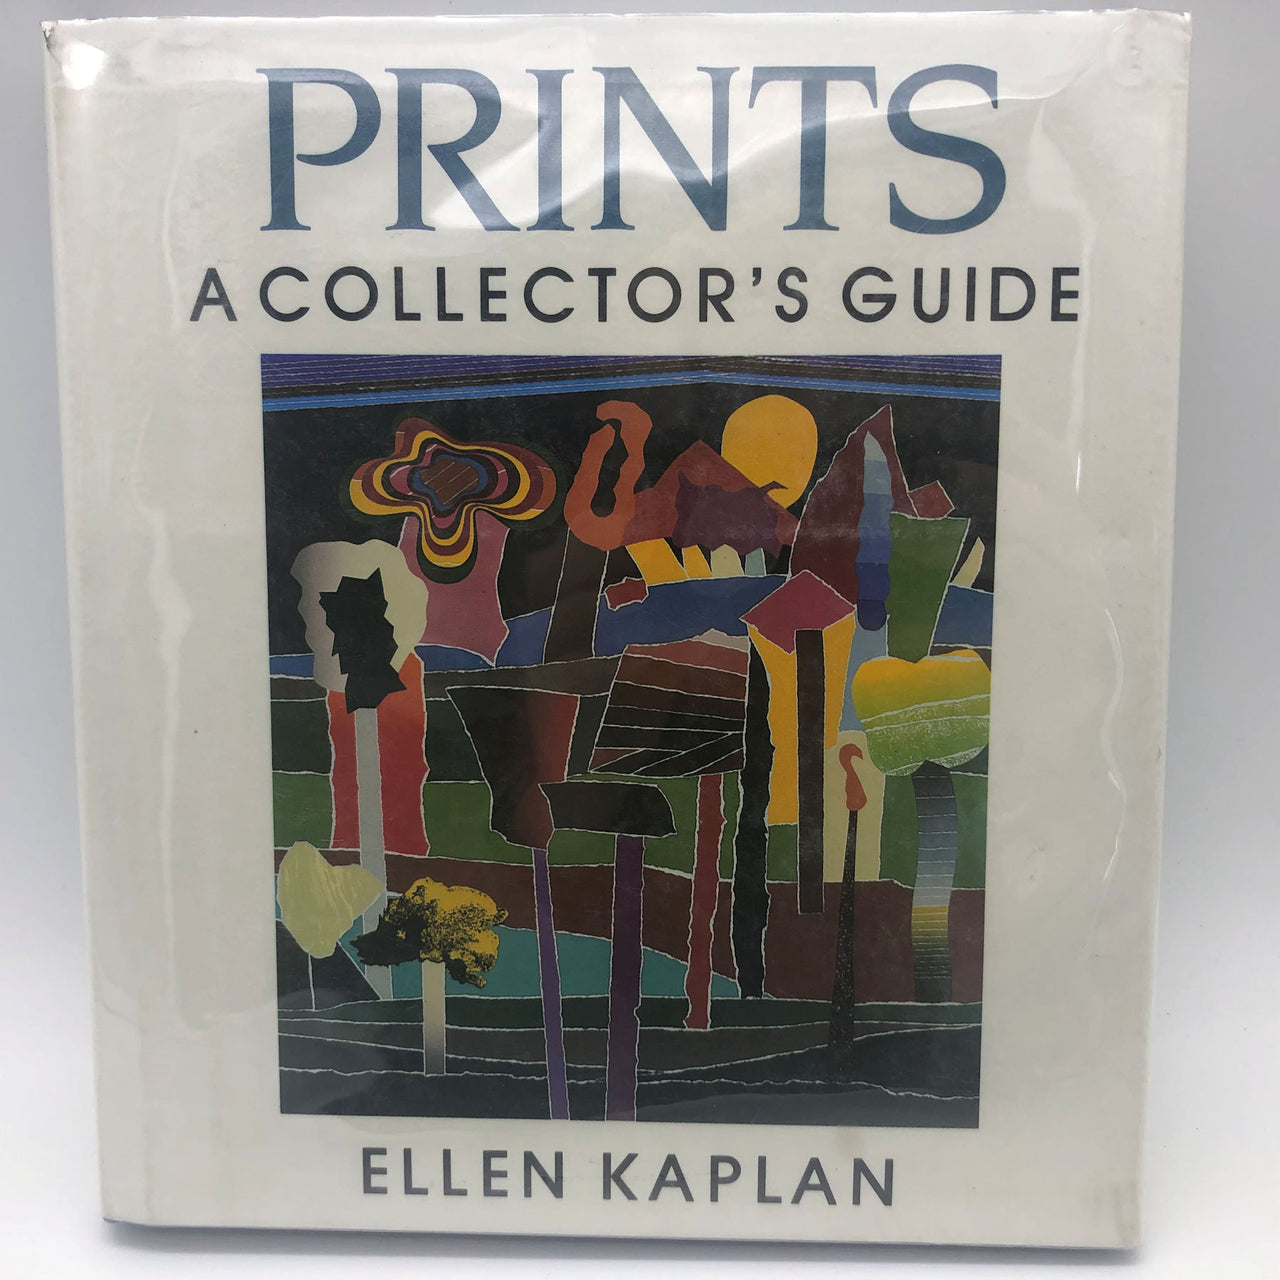 Prints A Collector's Guide Ellen Kaplan Hard Cover Book 1983